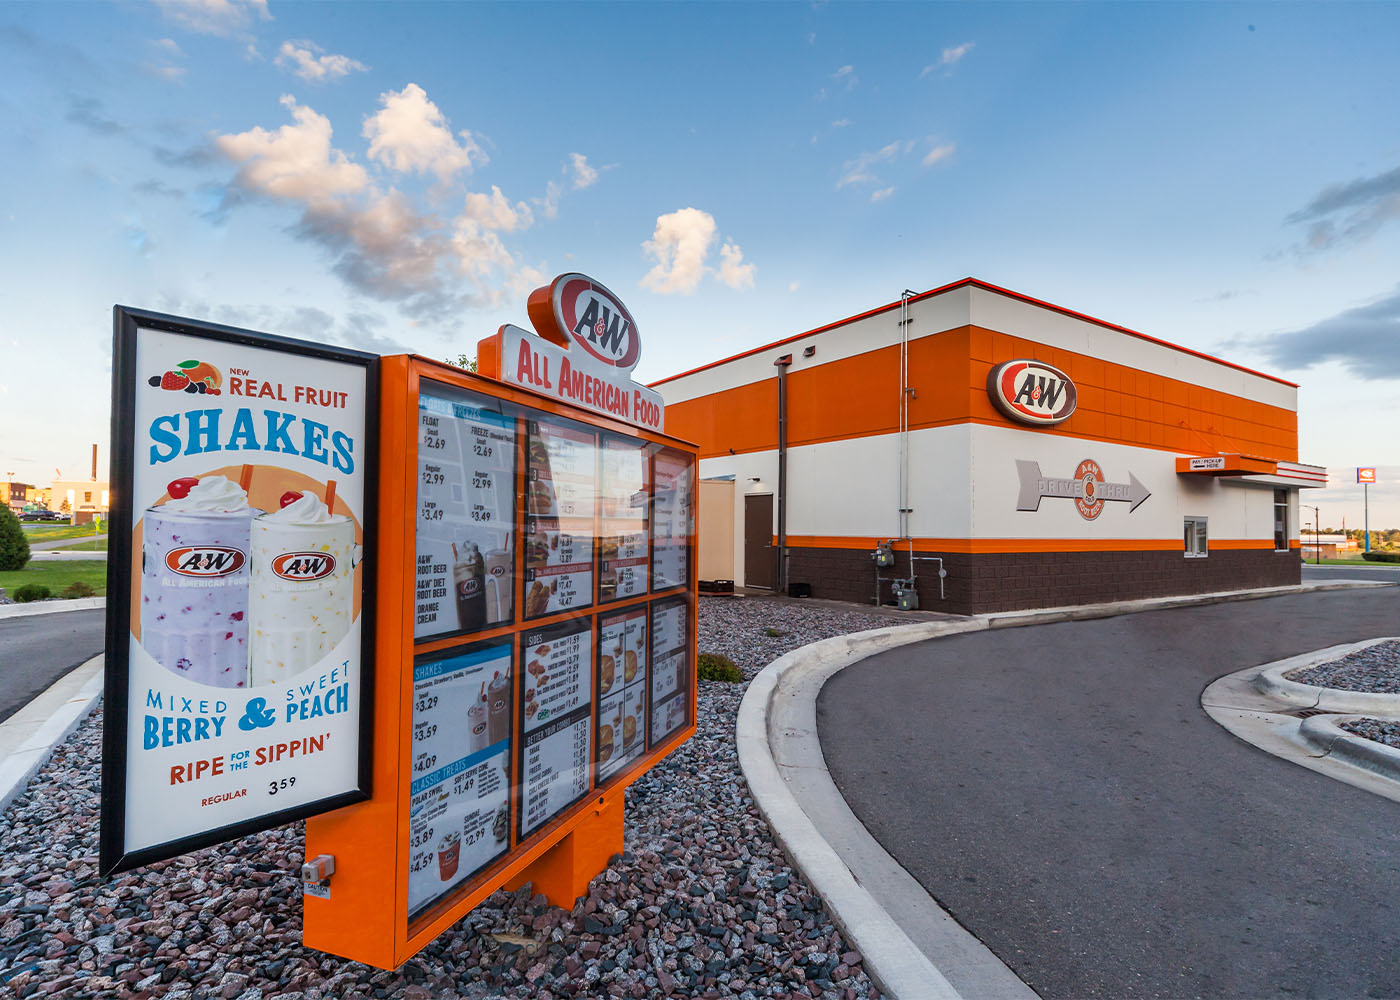 Exterior photo of A&W Restaurant drive-thru side during daytime.